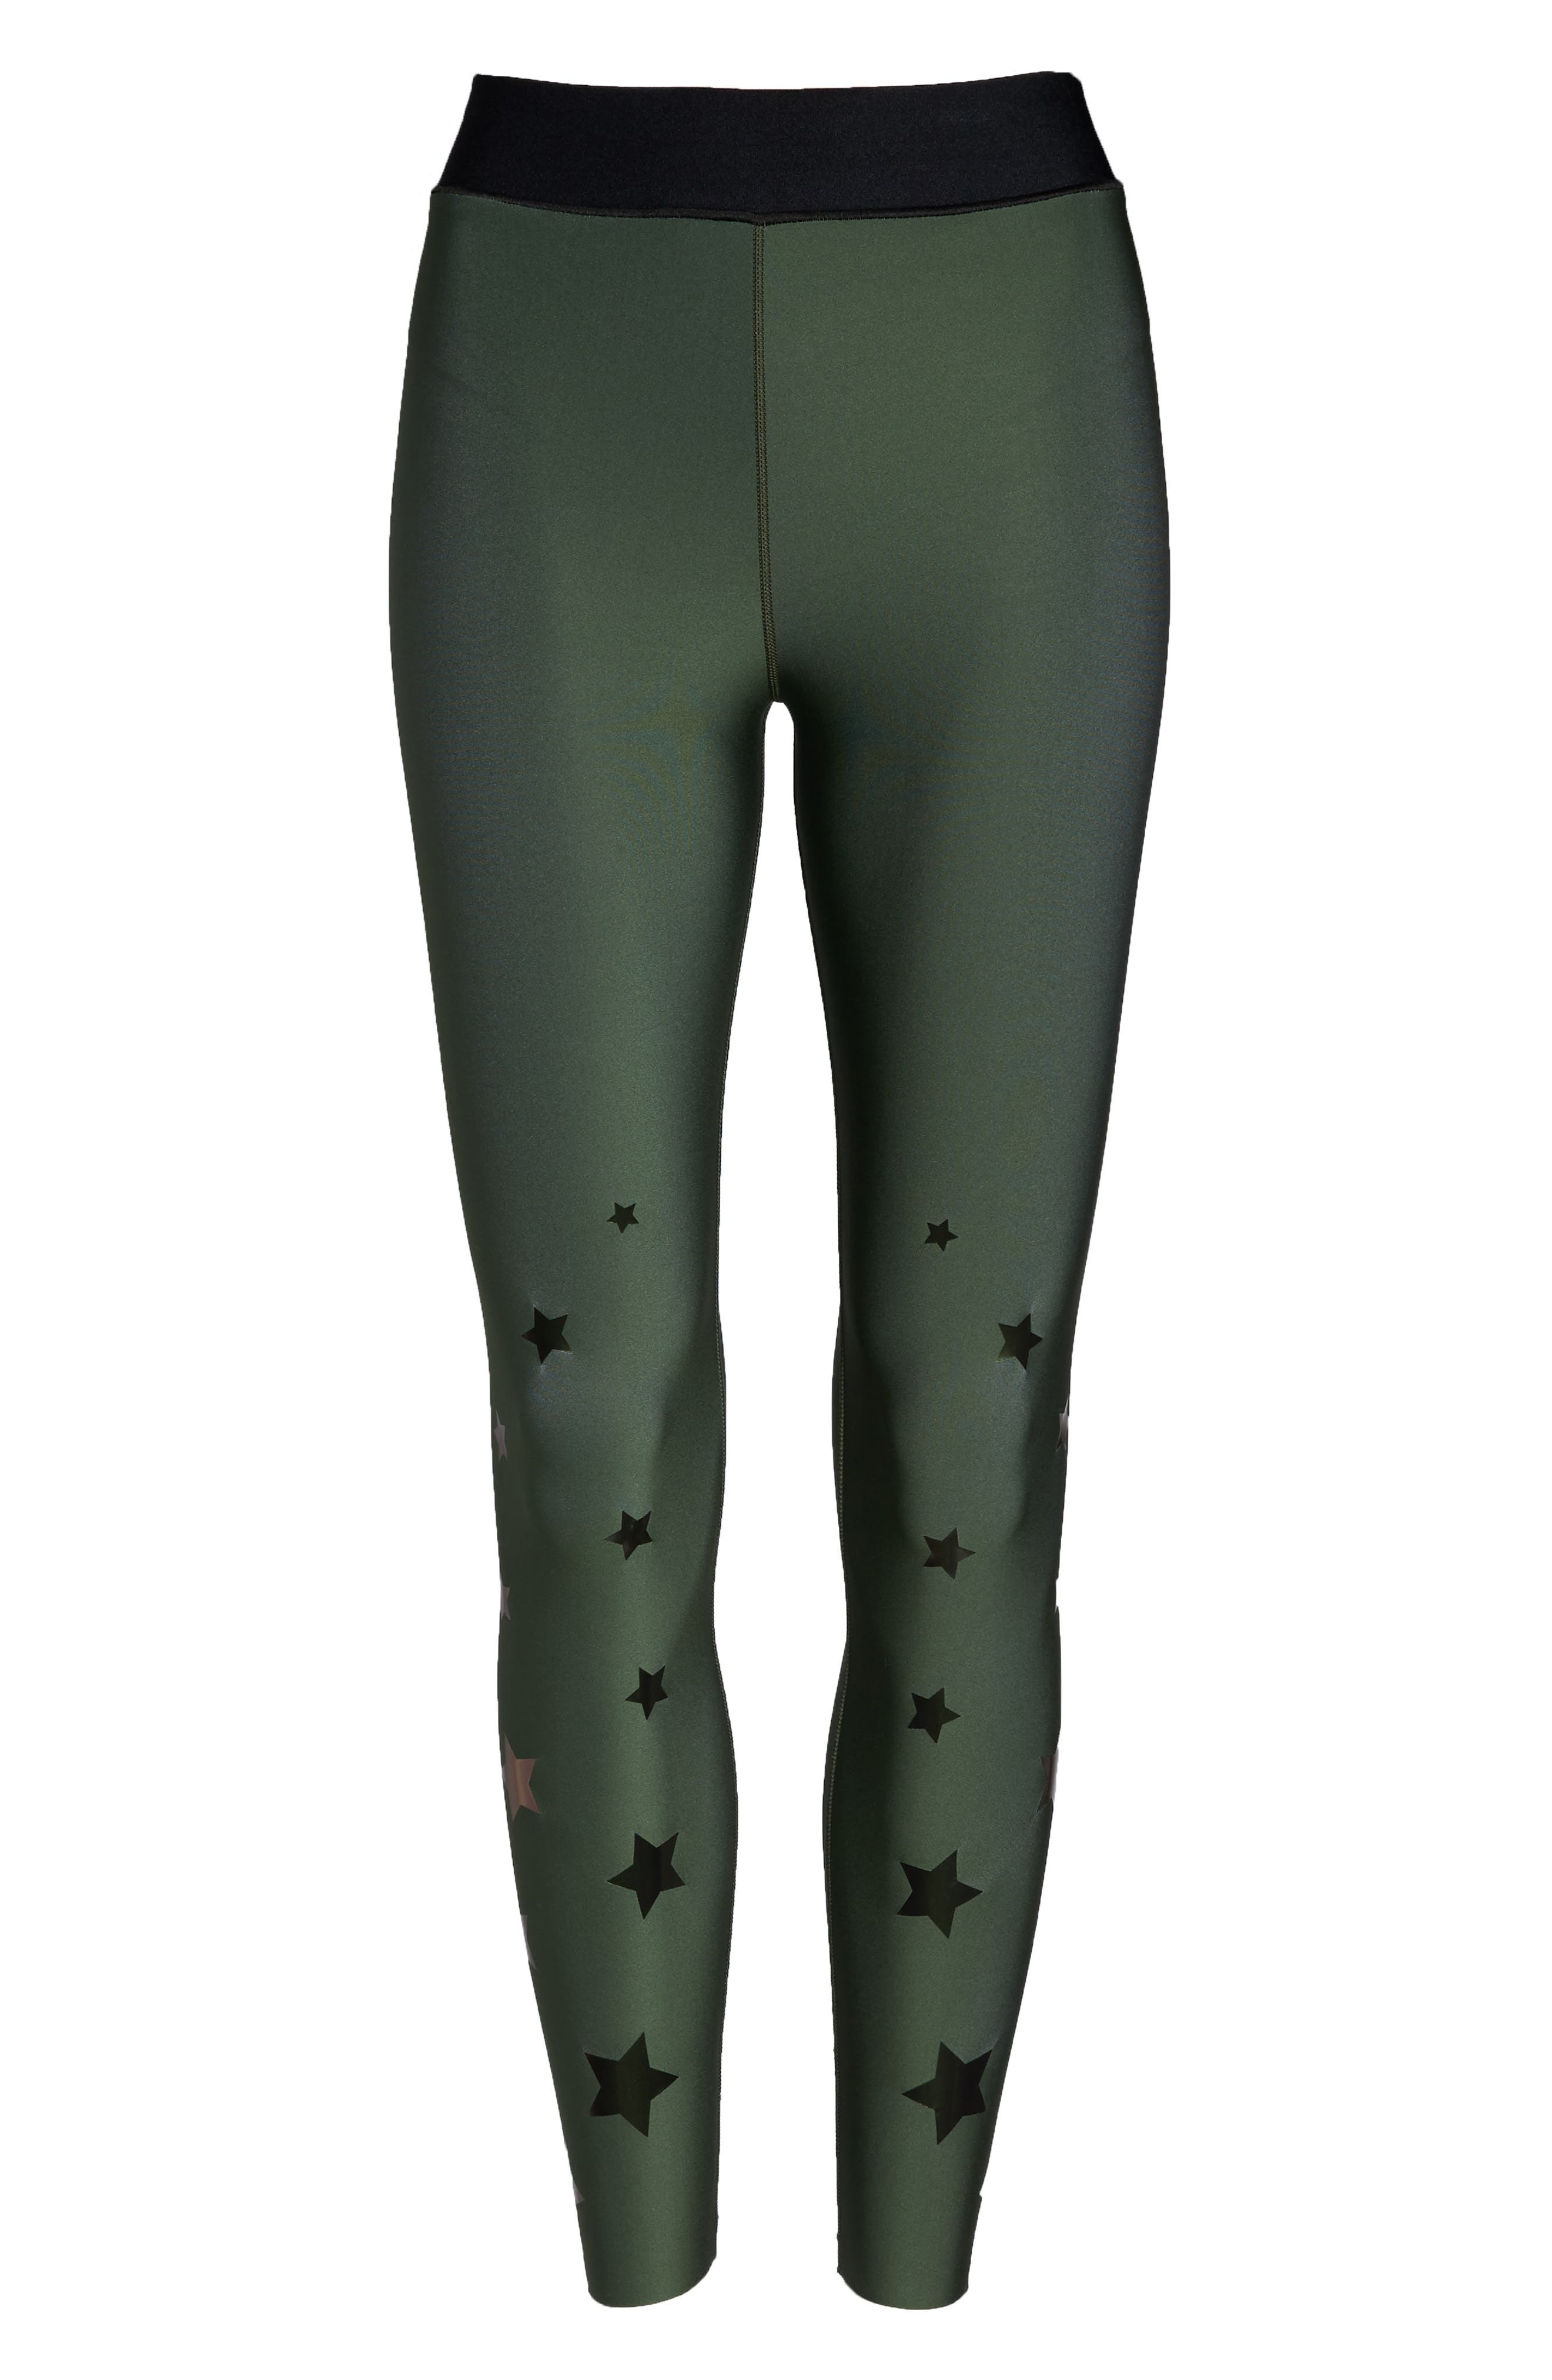 Ultra Luster Leggings,                             Alternate thumbnail 7, color,                             Army Green Beetle